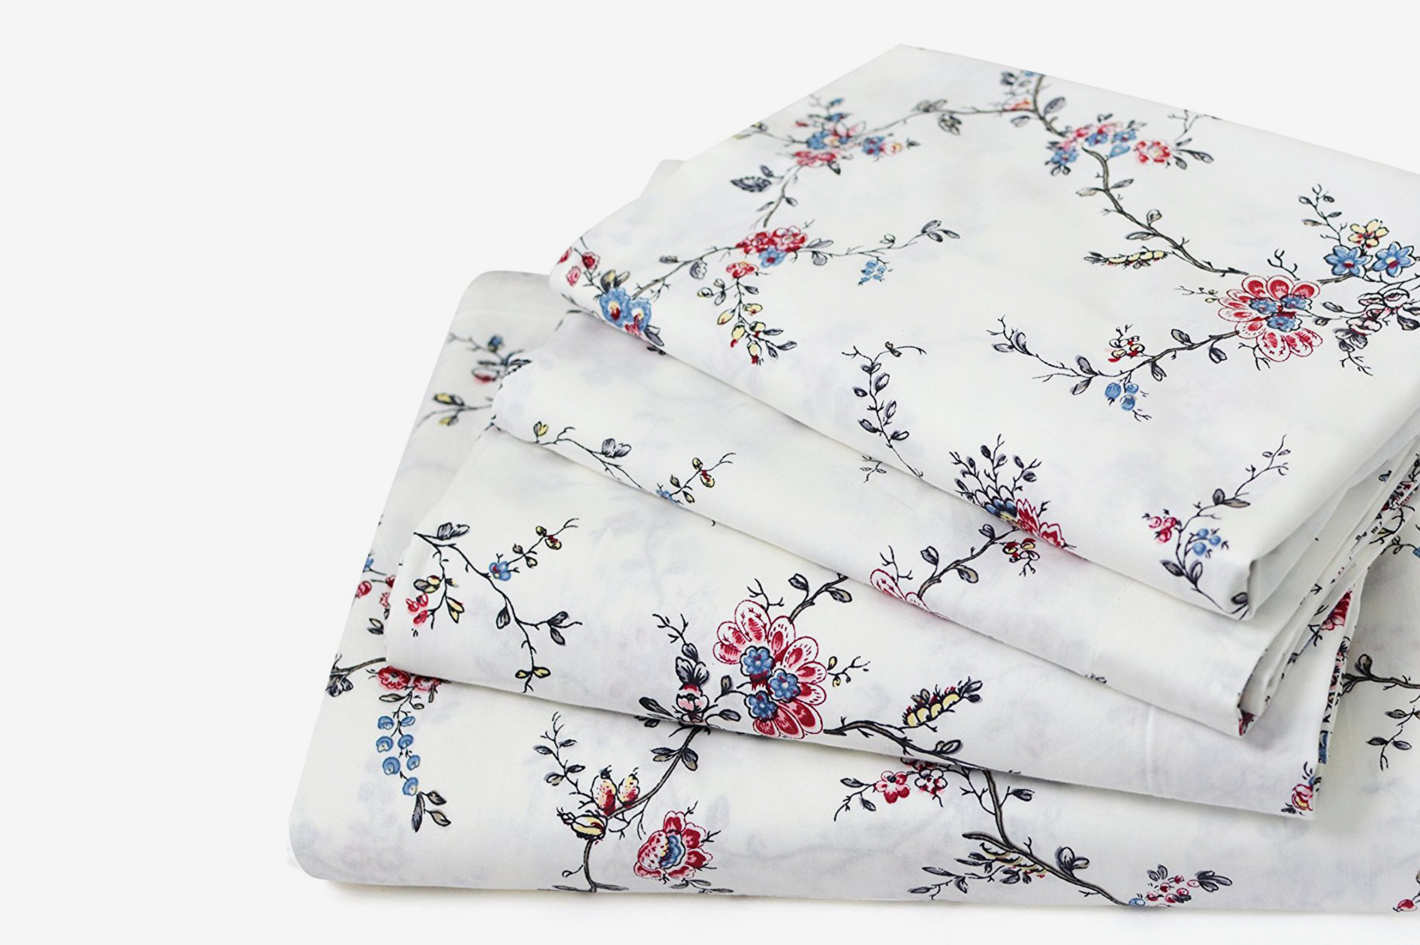 FADFAY Floral Bed Sheet Set